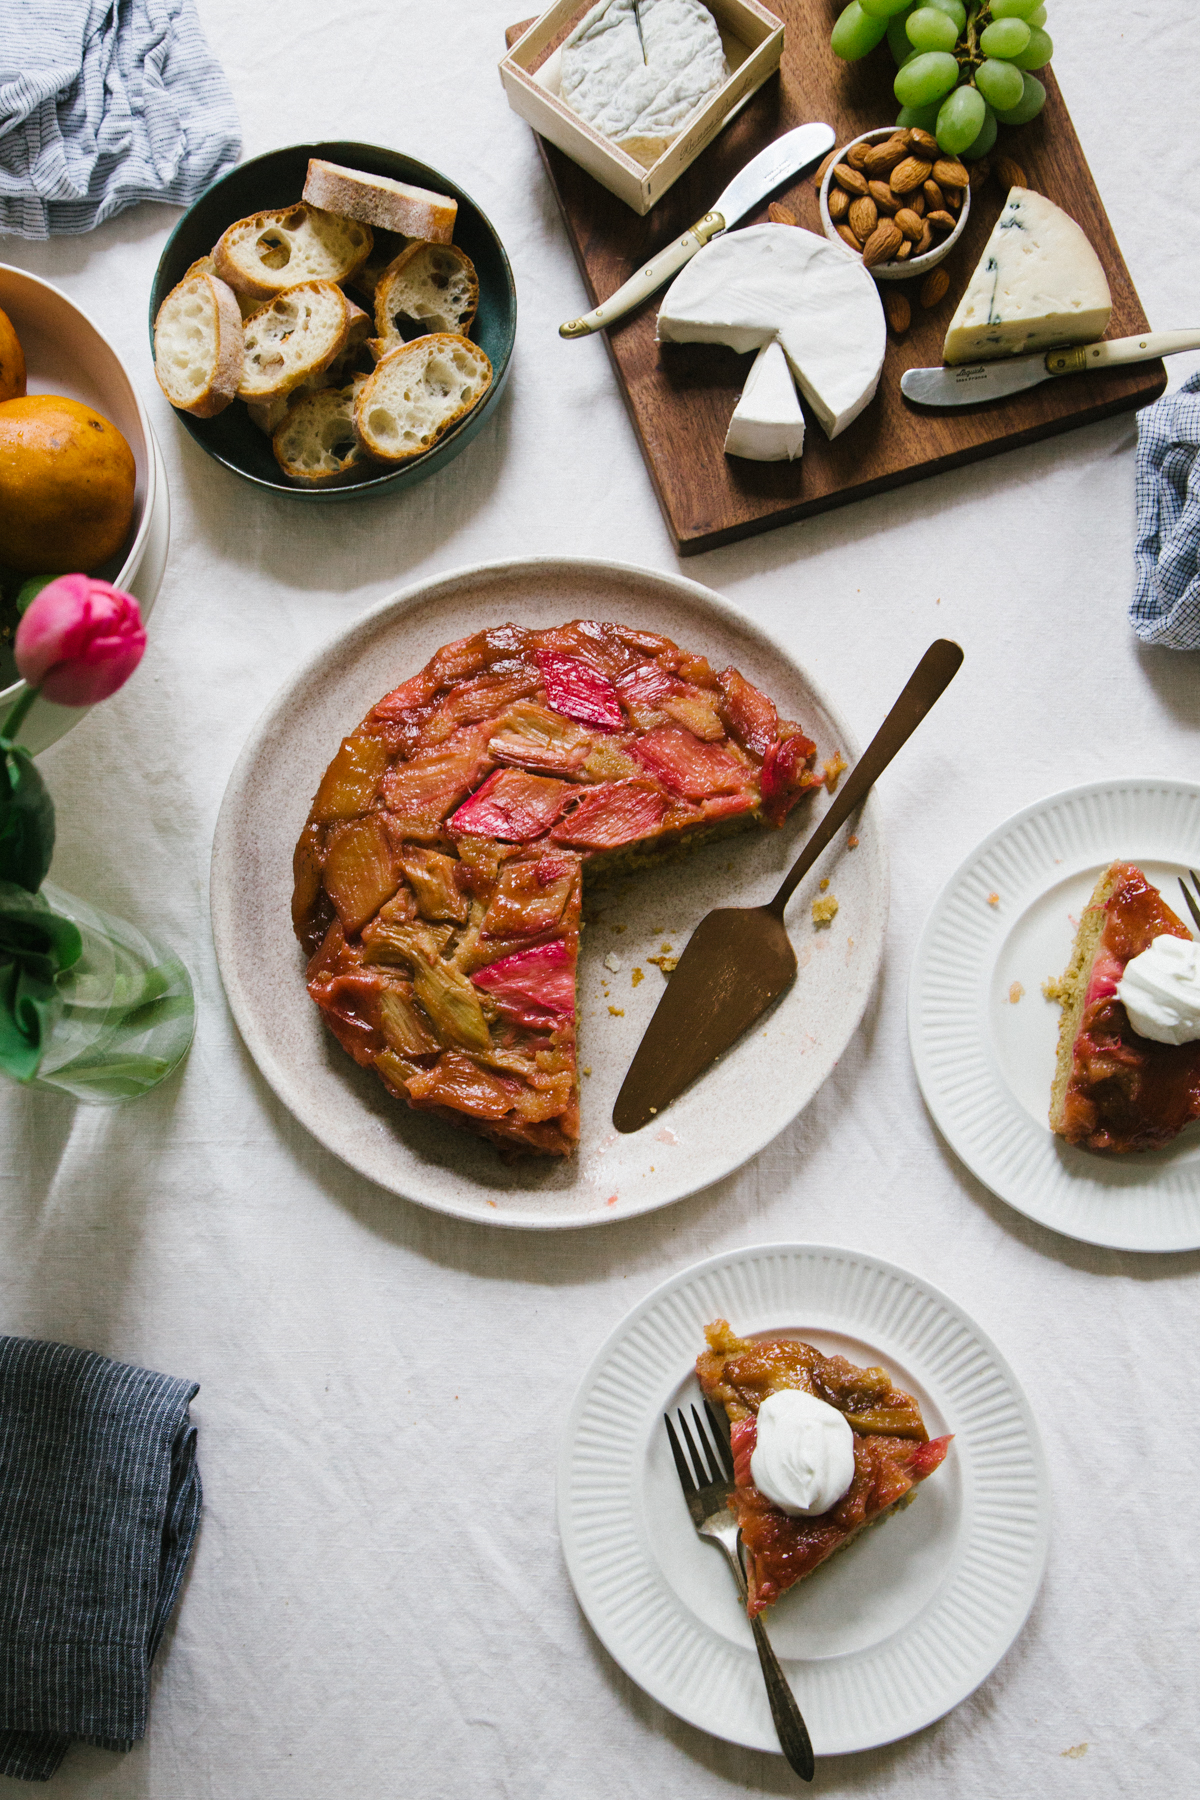 Rhubarb and Rye Upside Down Cake | apt 2b baking co